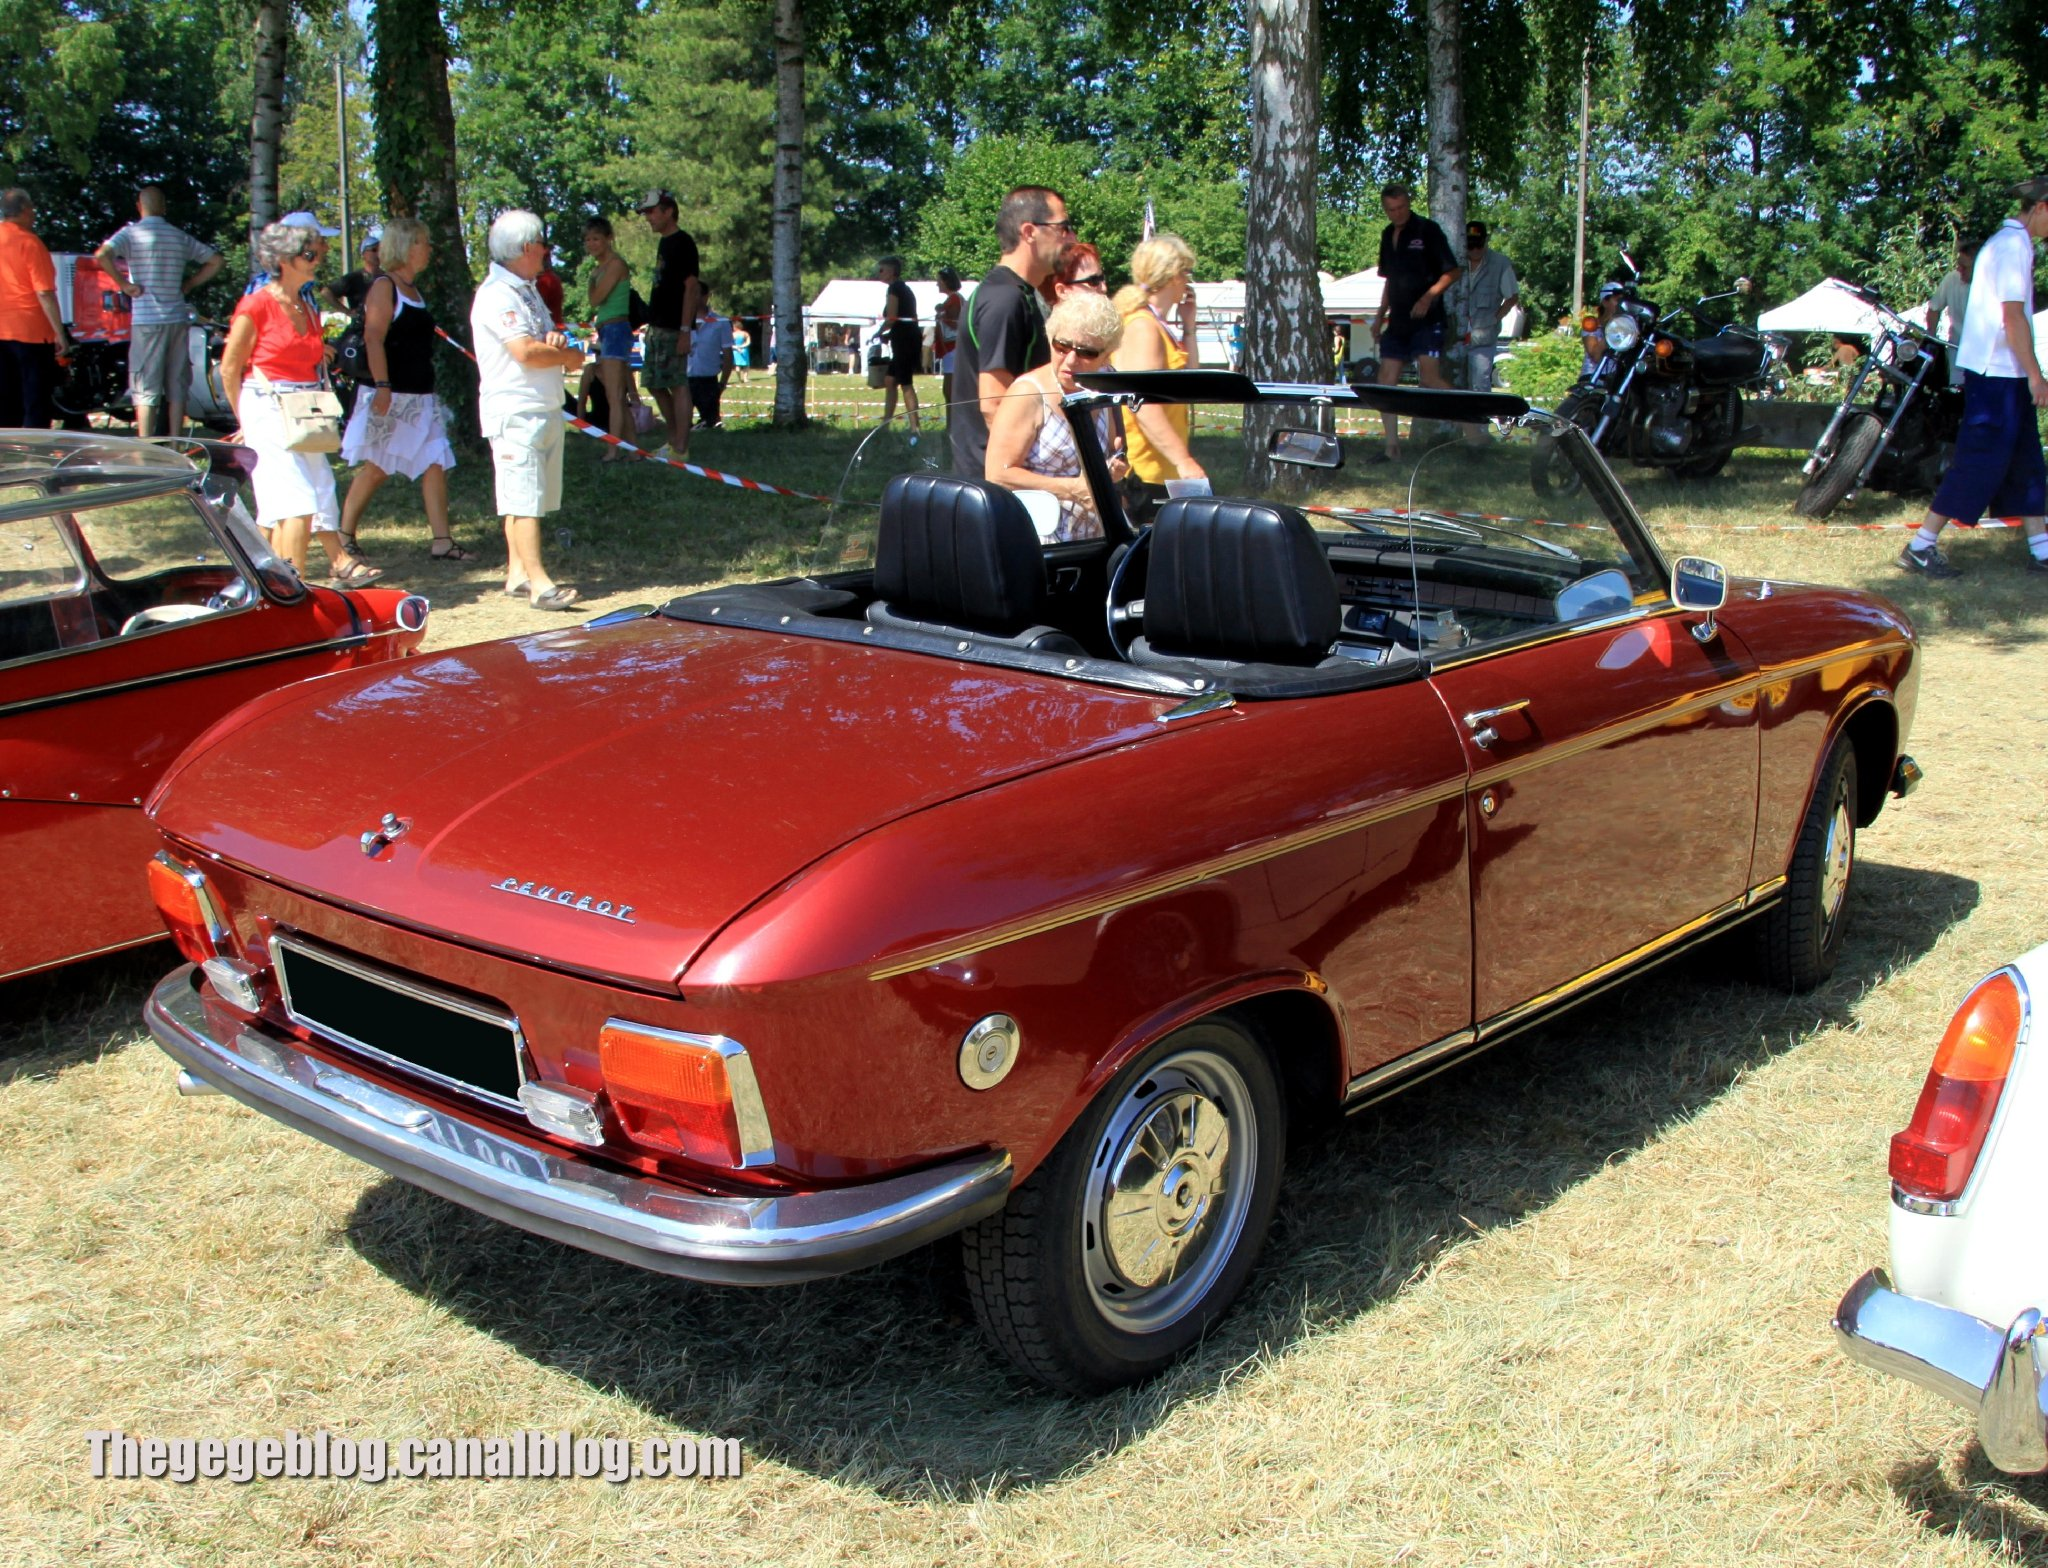 peugeot 304 cars classic french convertible cabriolet wallpaper 2048x1568 597879 wallpaperup. Black Bedroom Furniture Sets. Home Design Ideas